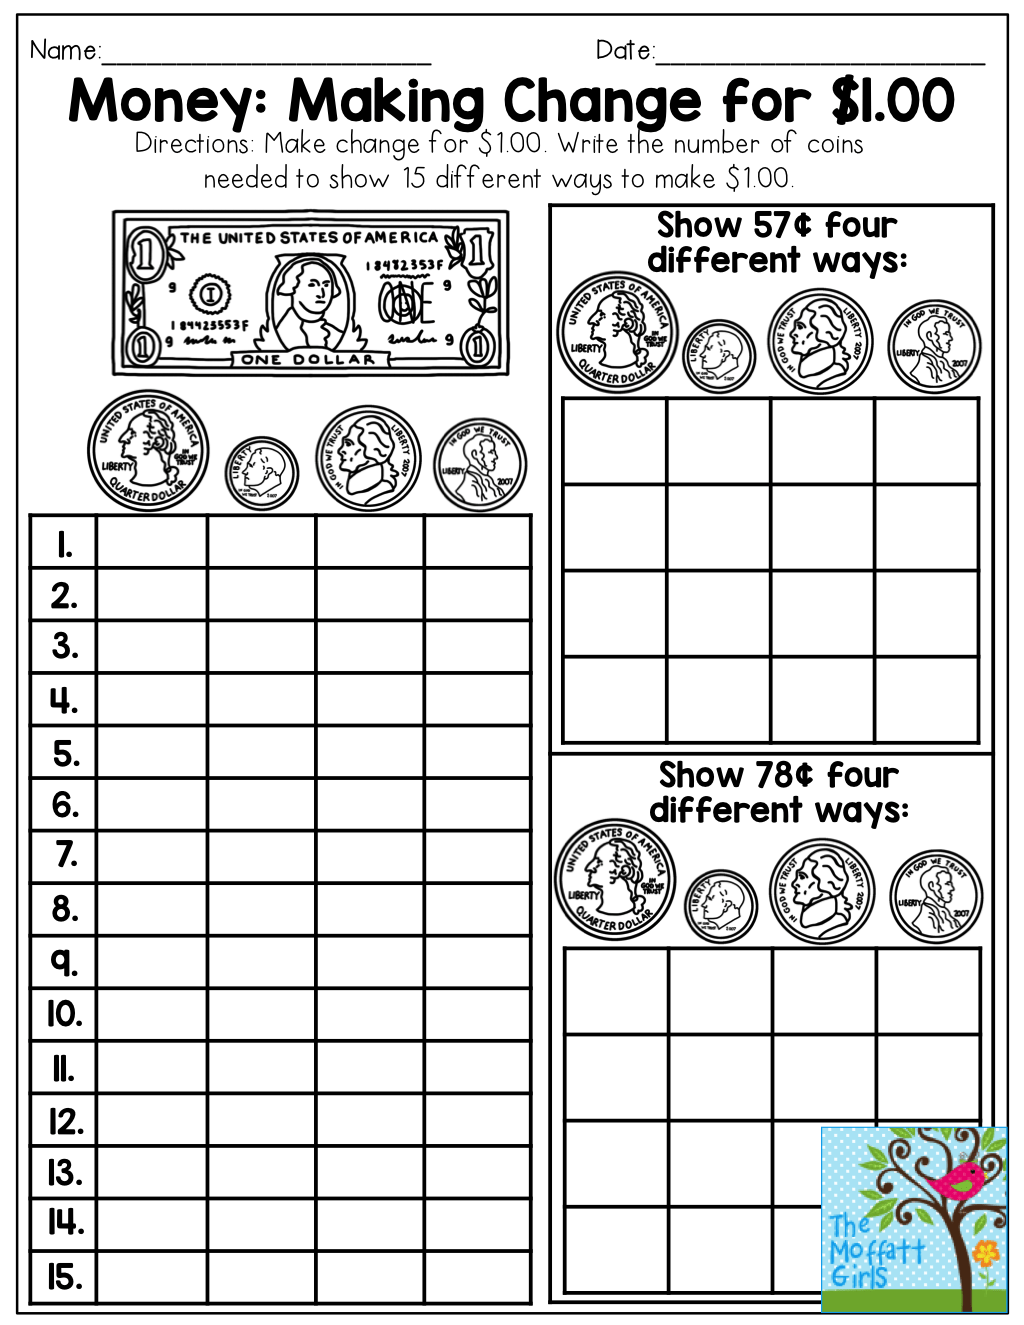 Worksheet For Counting Money And Making Change